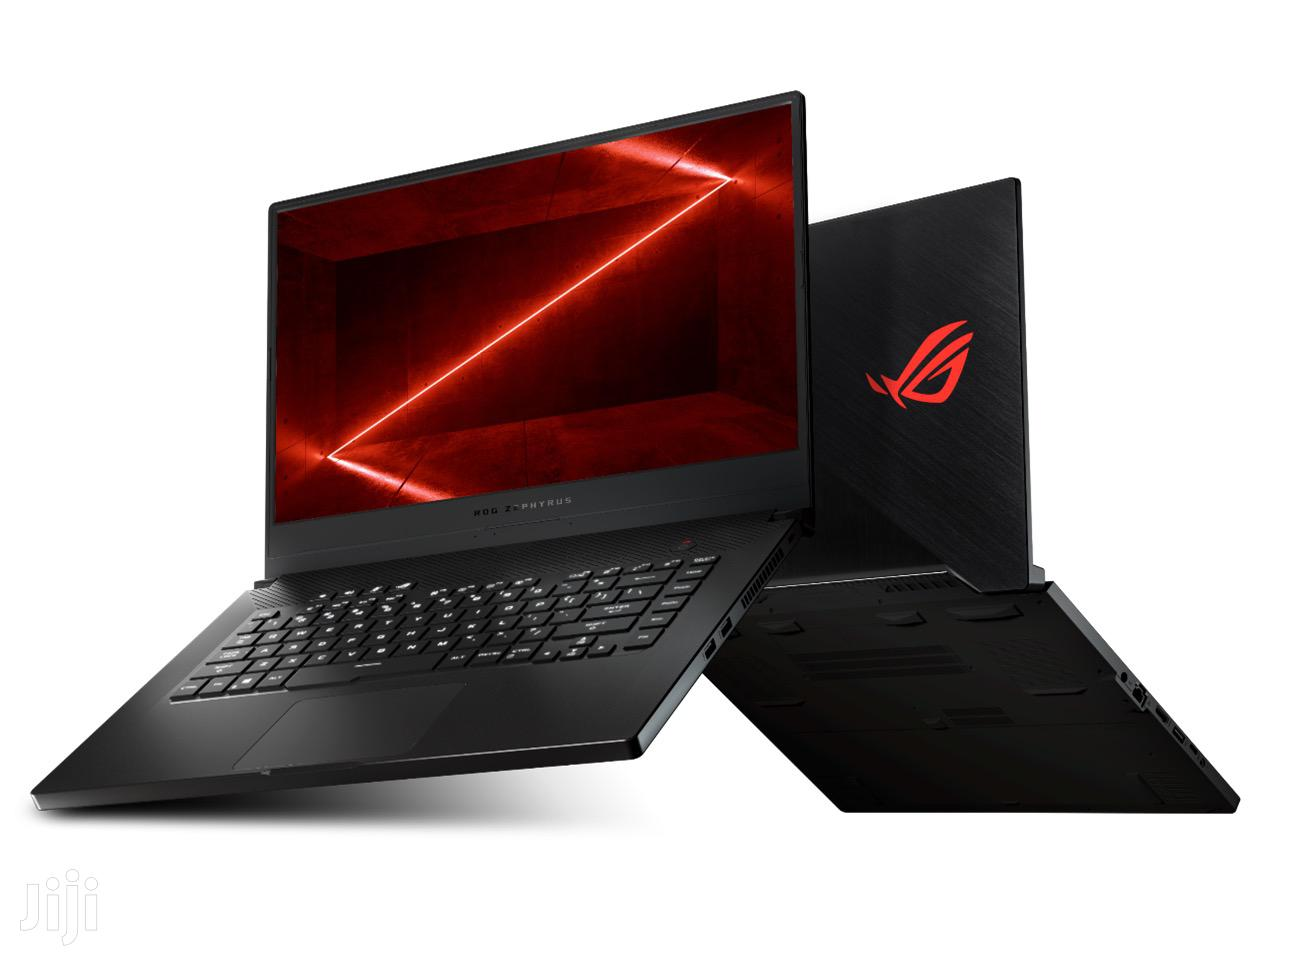 New Laptop Asus ROG Zephyrus M15 GU502LU 16GB AMD Ryzen SSD 512GB | Laptops & Computers for sale in Osu, Greater Accra, Ghana